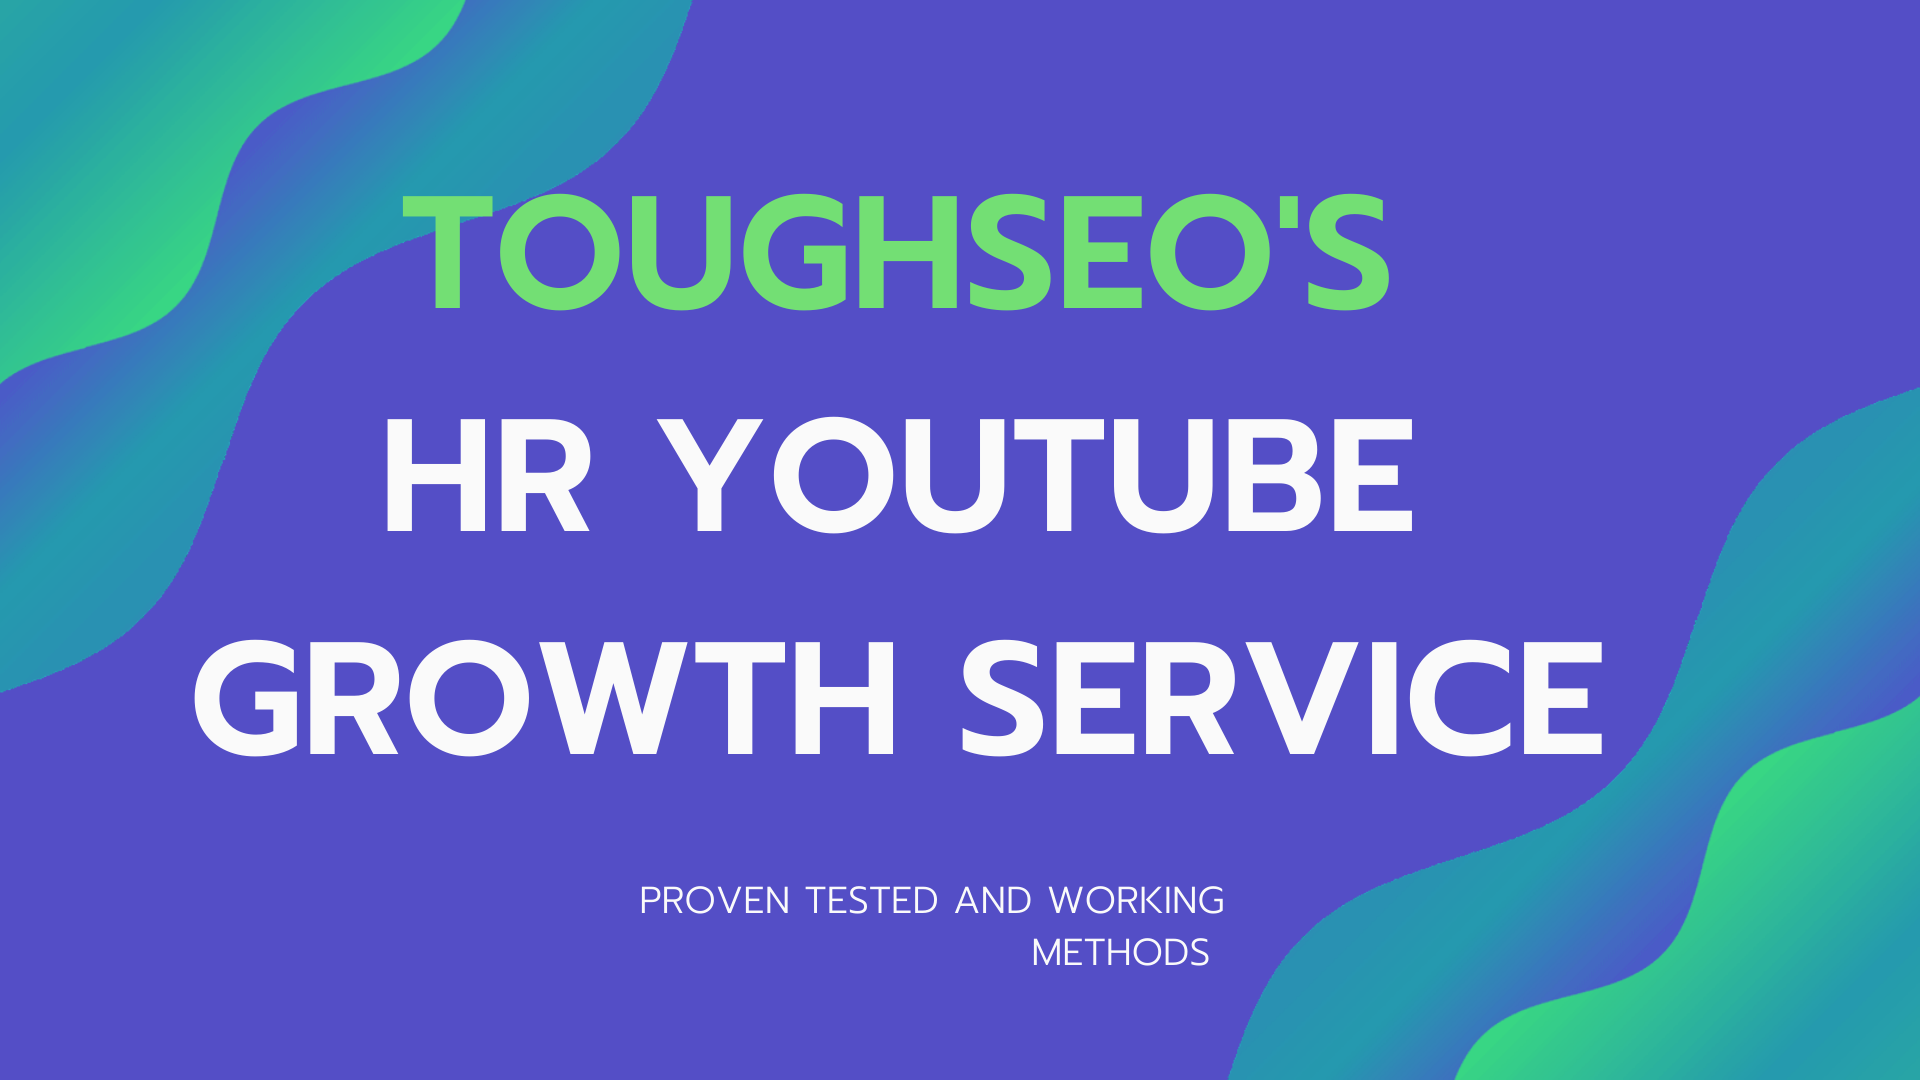 HR YOUTUBE VIDEO PROMOTIONS YOUTUBE GROWTH SERVICE